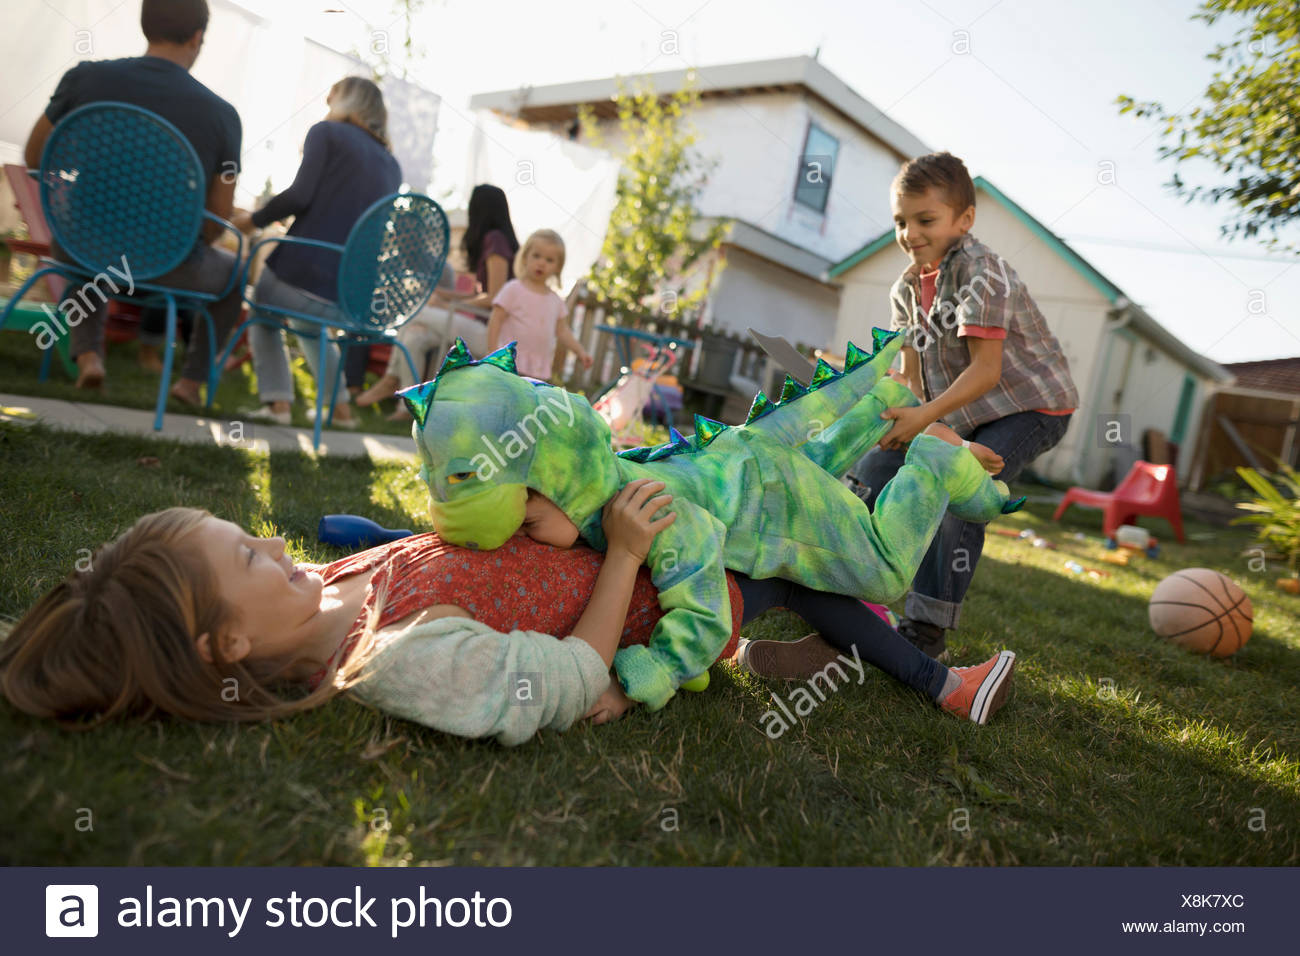 Brother in dinosaur costume tackling, playing with sister in backyard - Stock Image